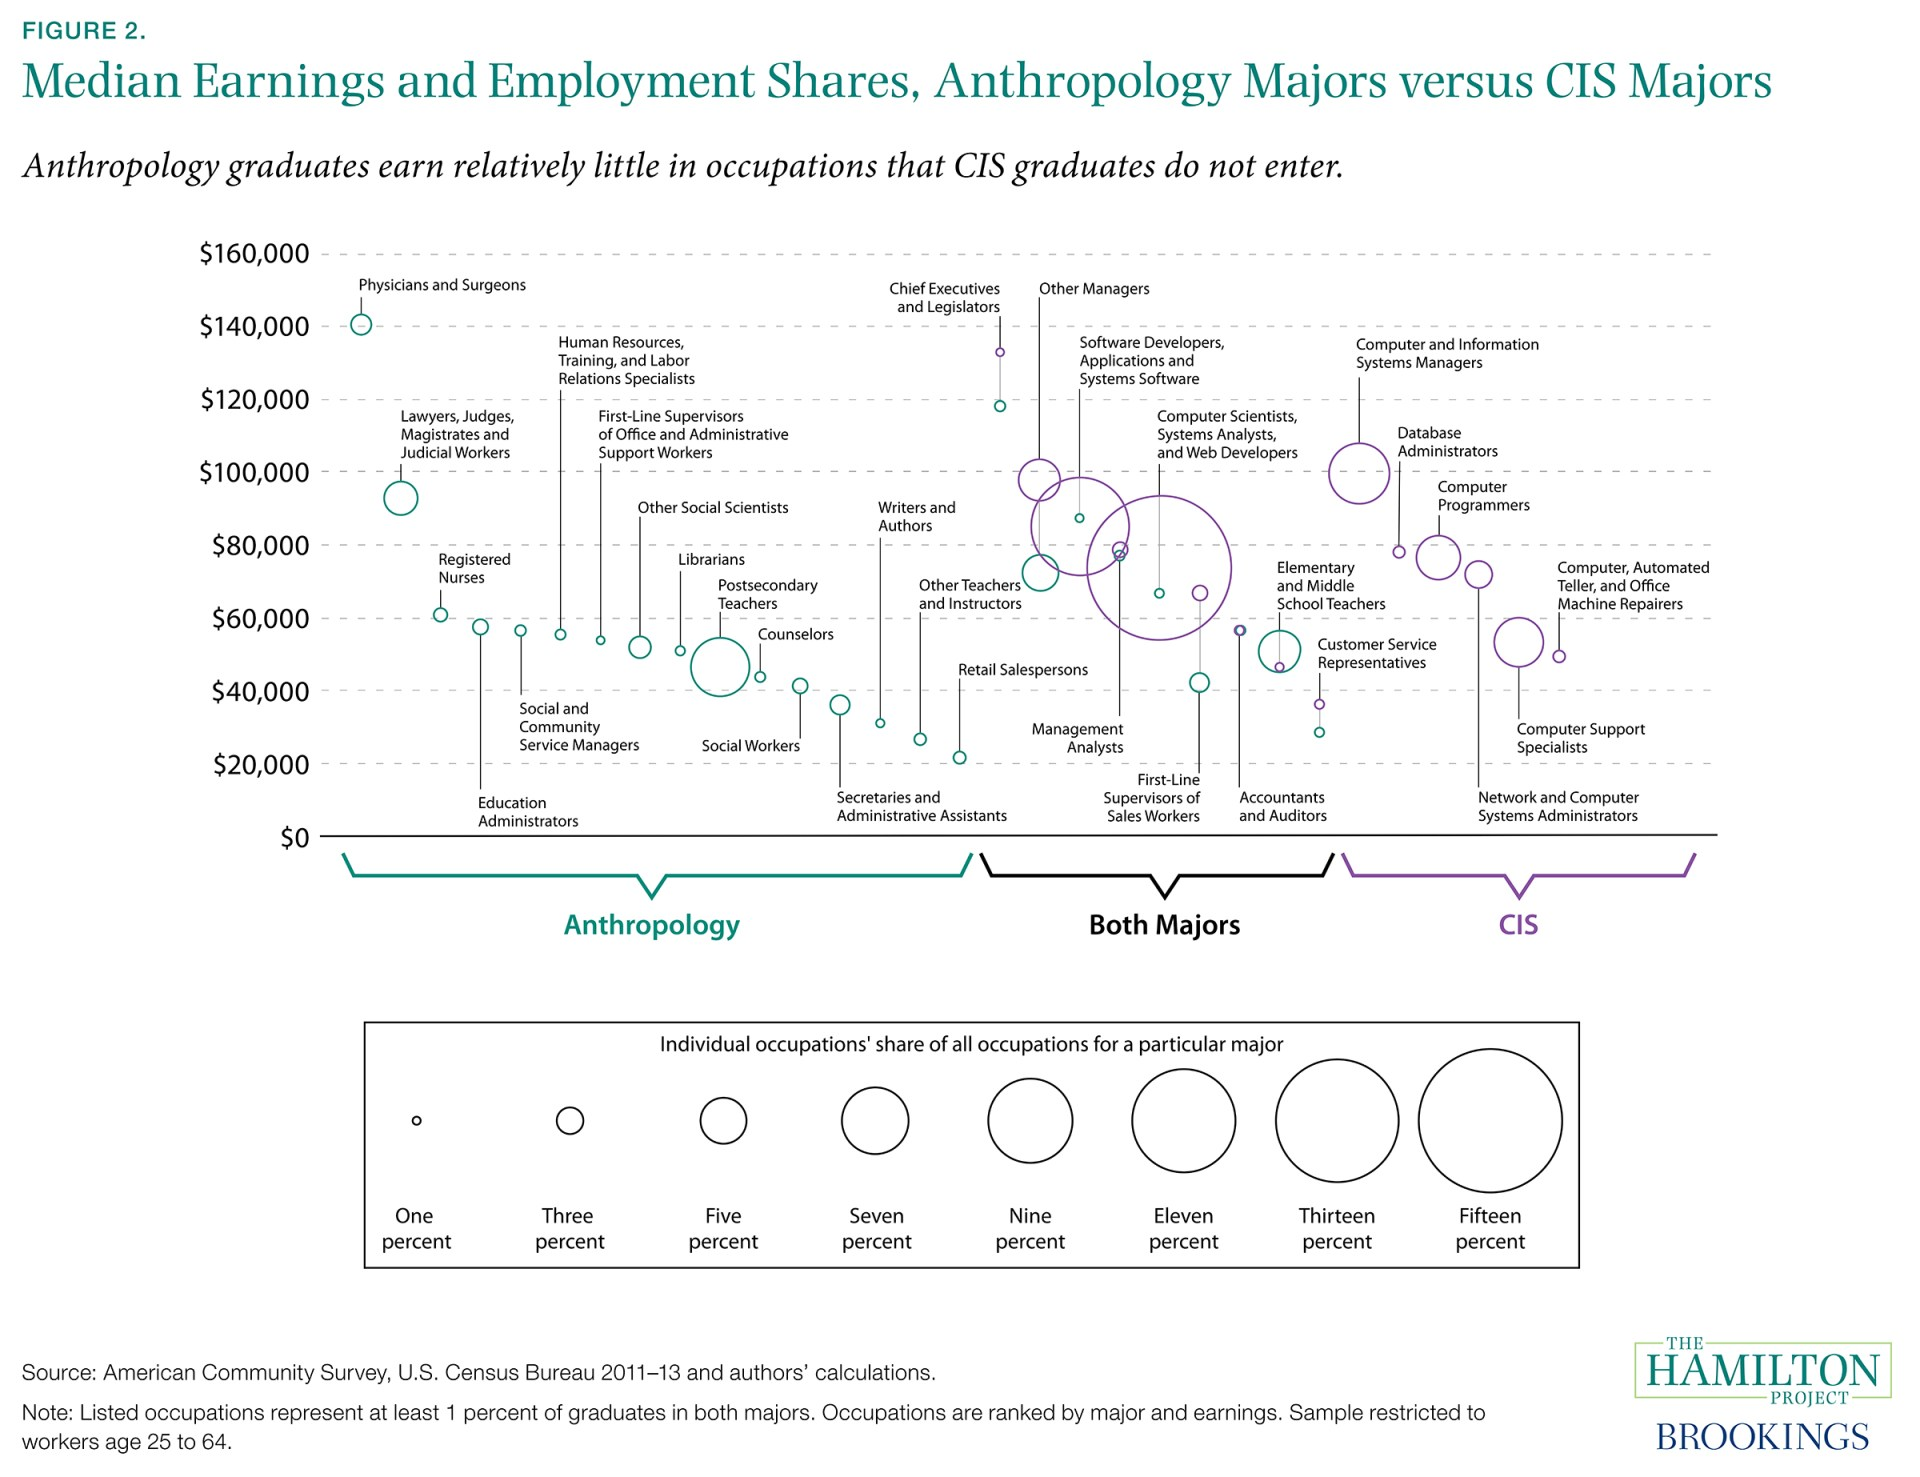 Figure 2. Median Earnings and Employment Shares. Anthropology Majors versus CIS Majors